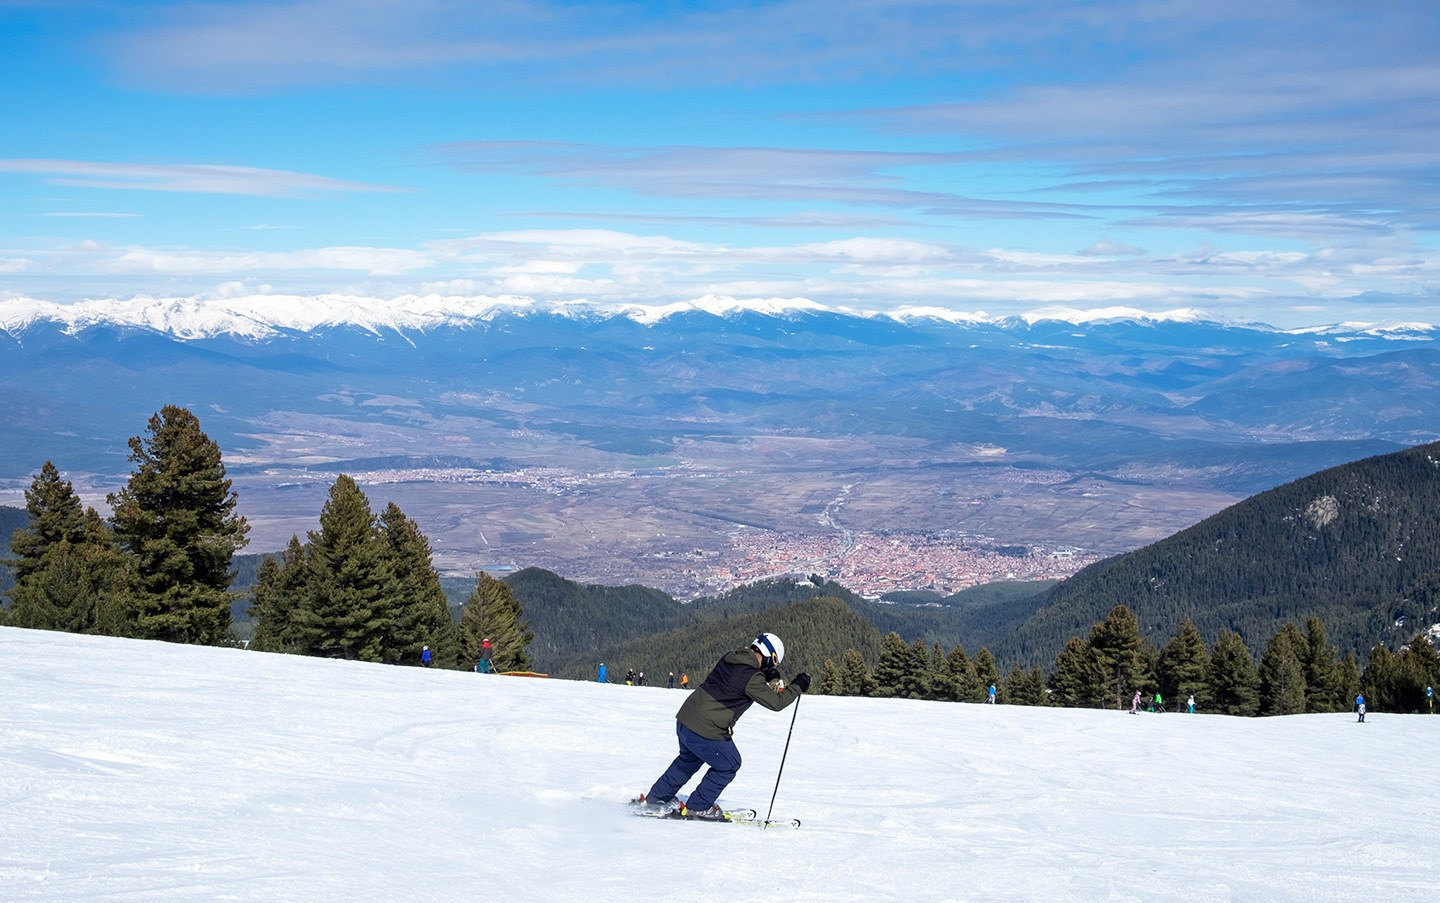 Overlooking Bansko town from the piste